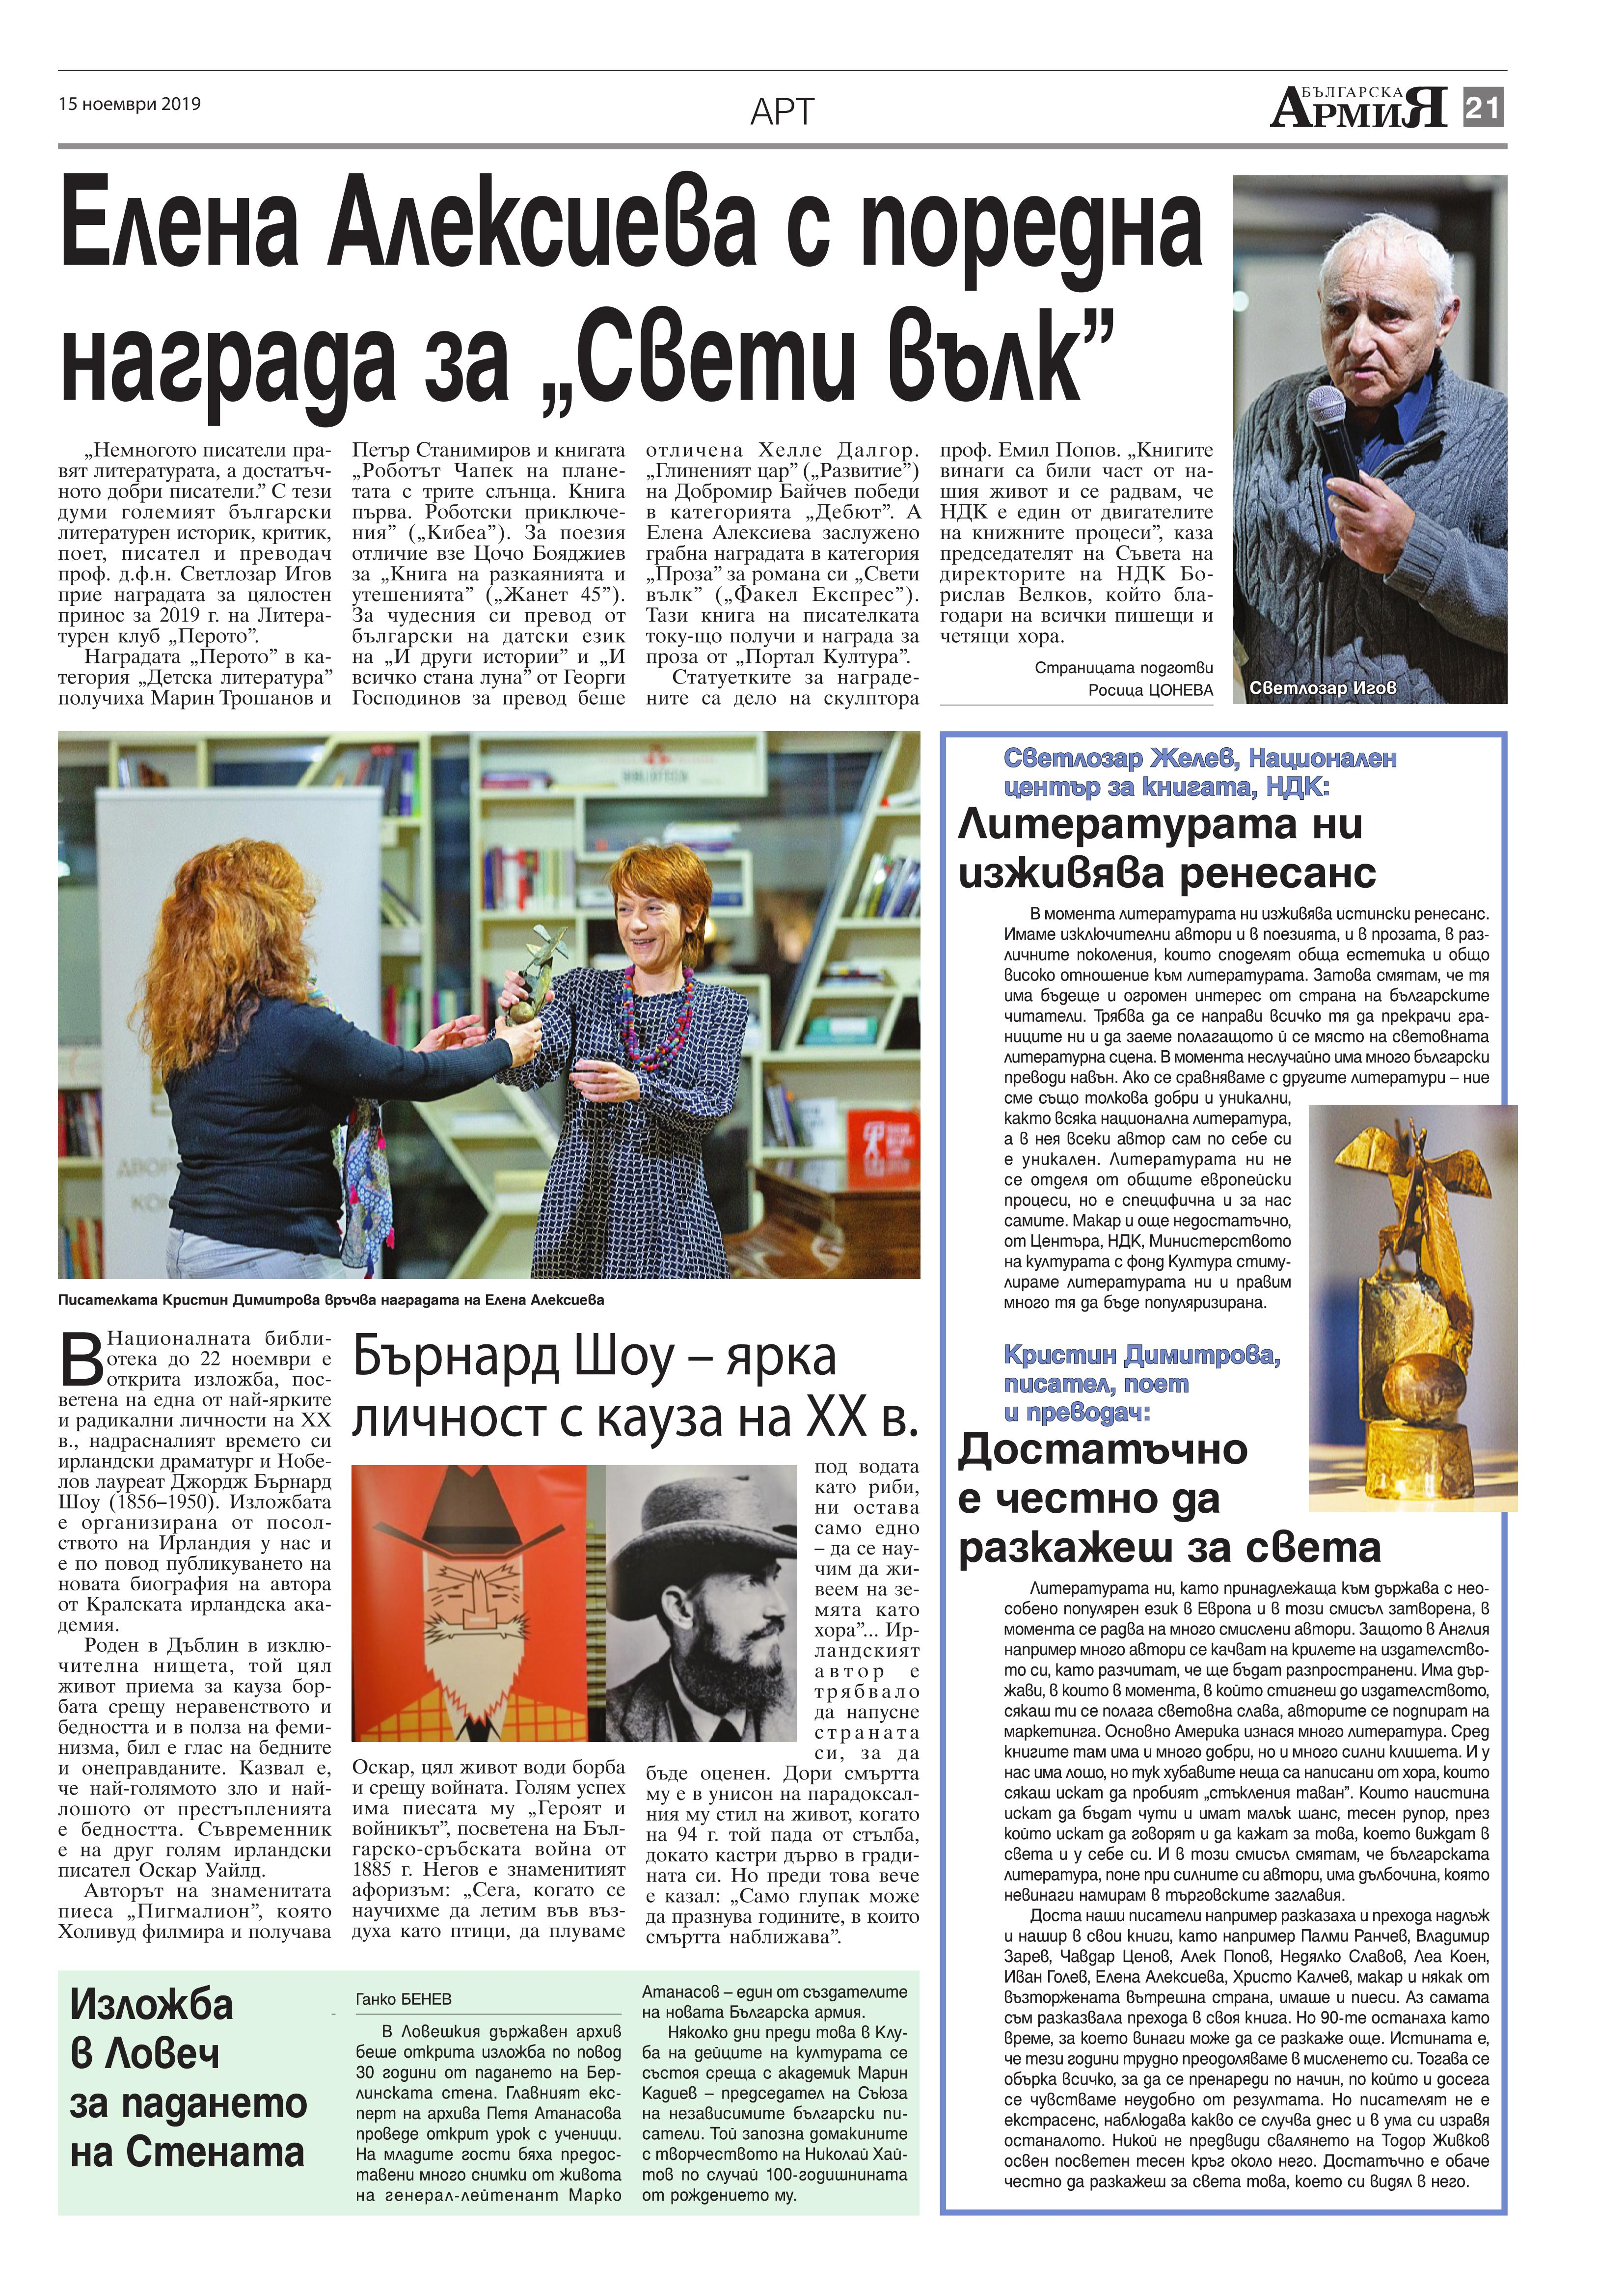 https://armymedia.bg/wp-content/uploads/2015/06/21.page1_-116.jpg